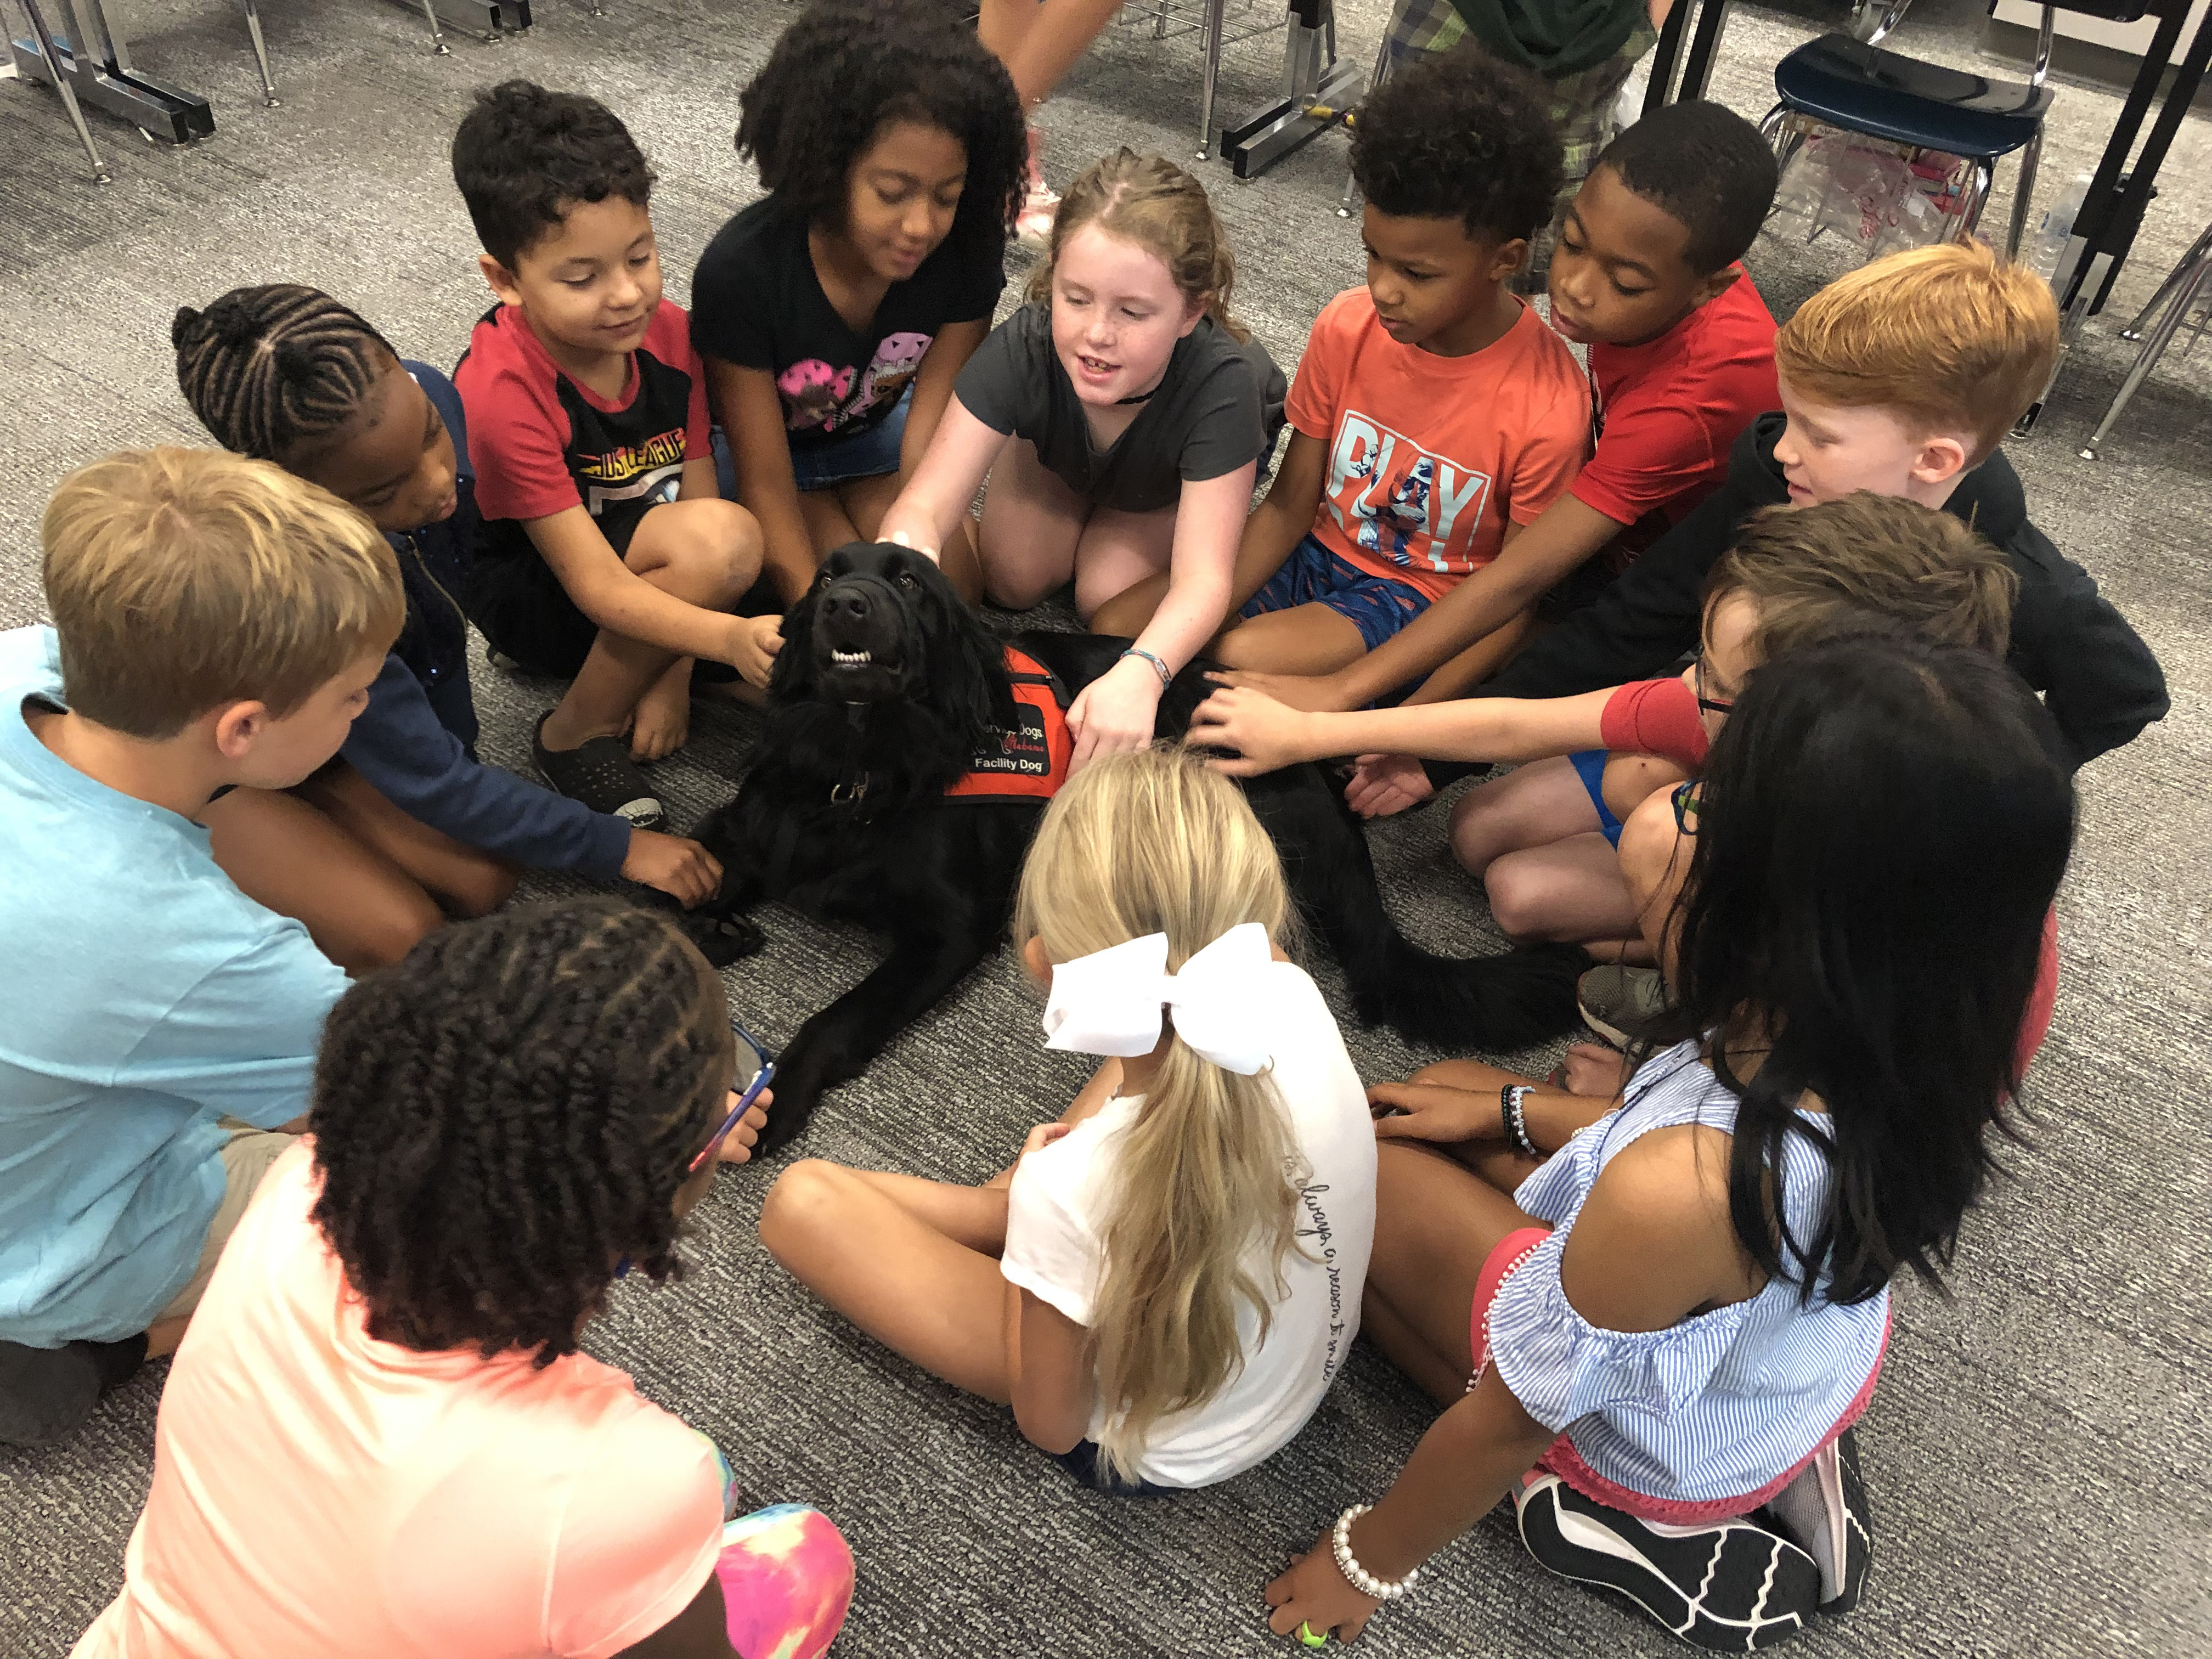 Students visit with Hall-Kent Elementary School's dog, Maize, in Alabama. (Photo provided by U.S. Department of Education)